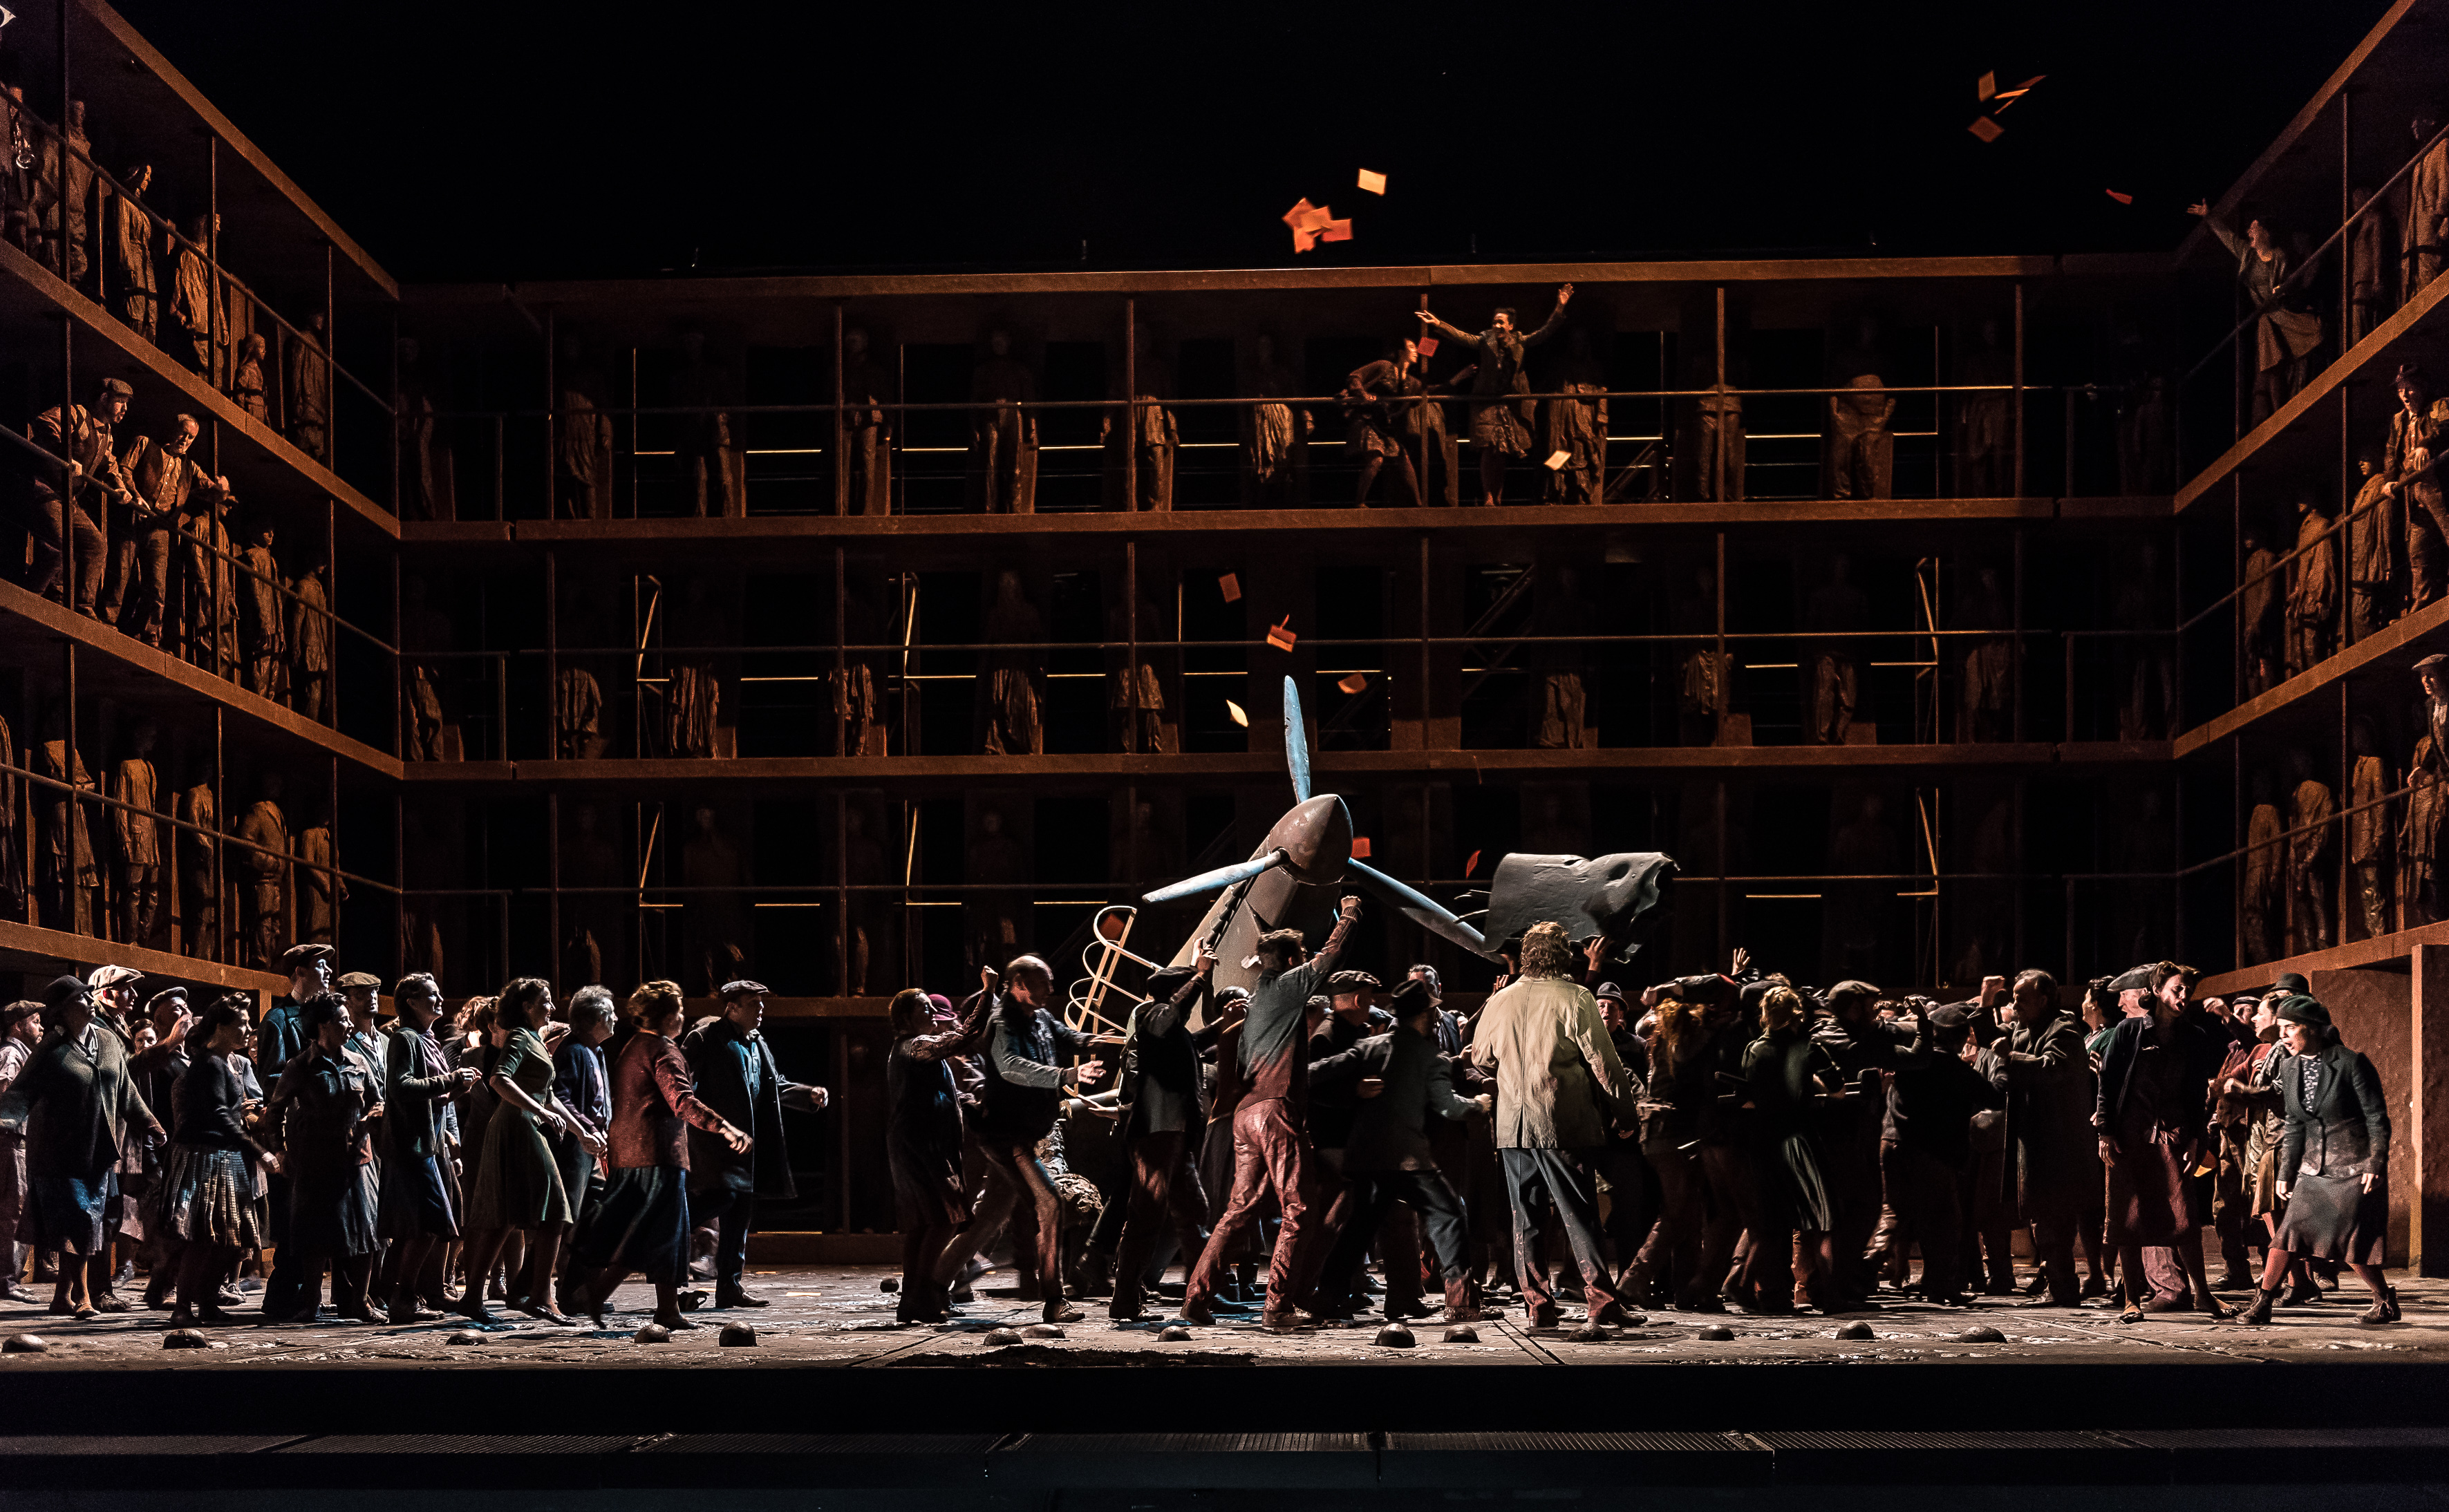 One of Barda's photos from the Royal Opera House's recent production of Enescu's Oedipe